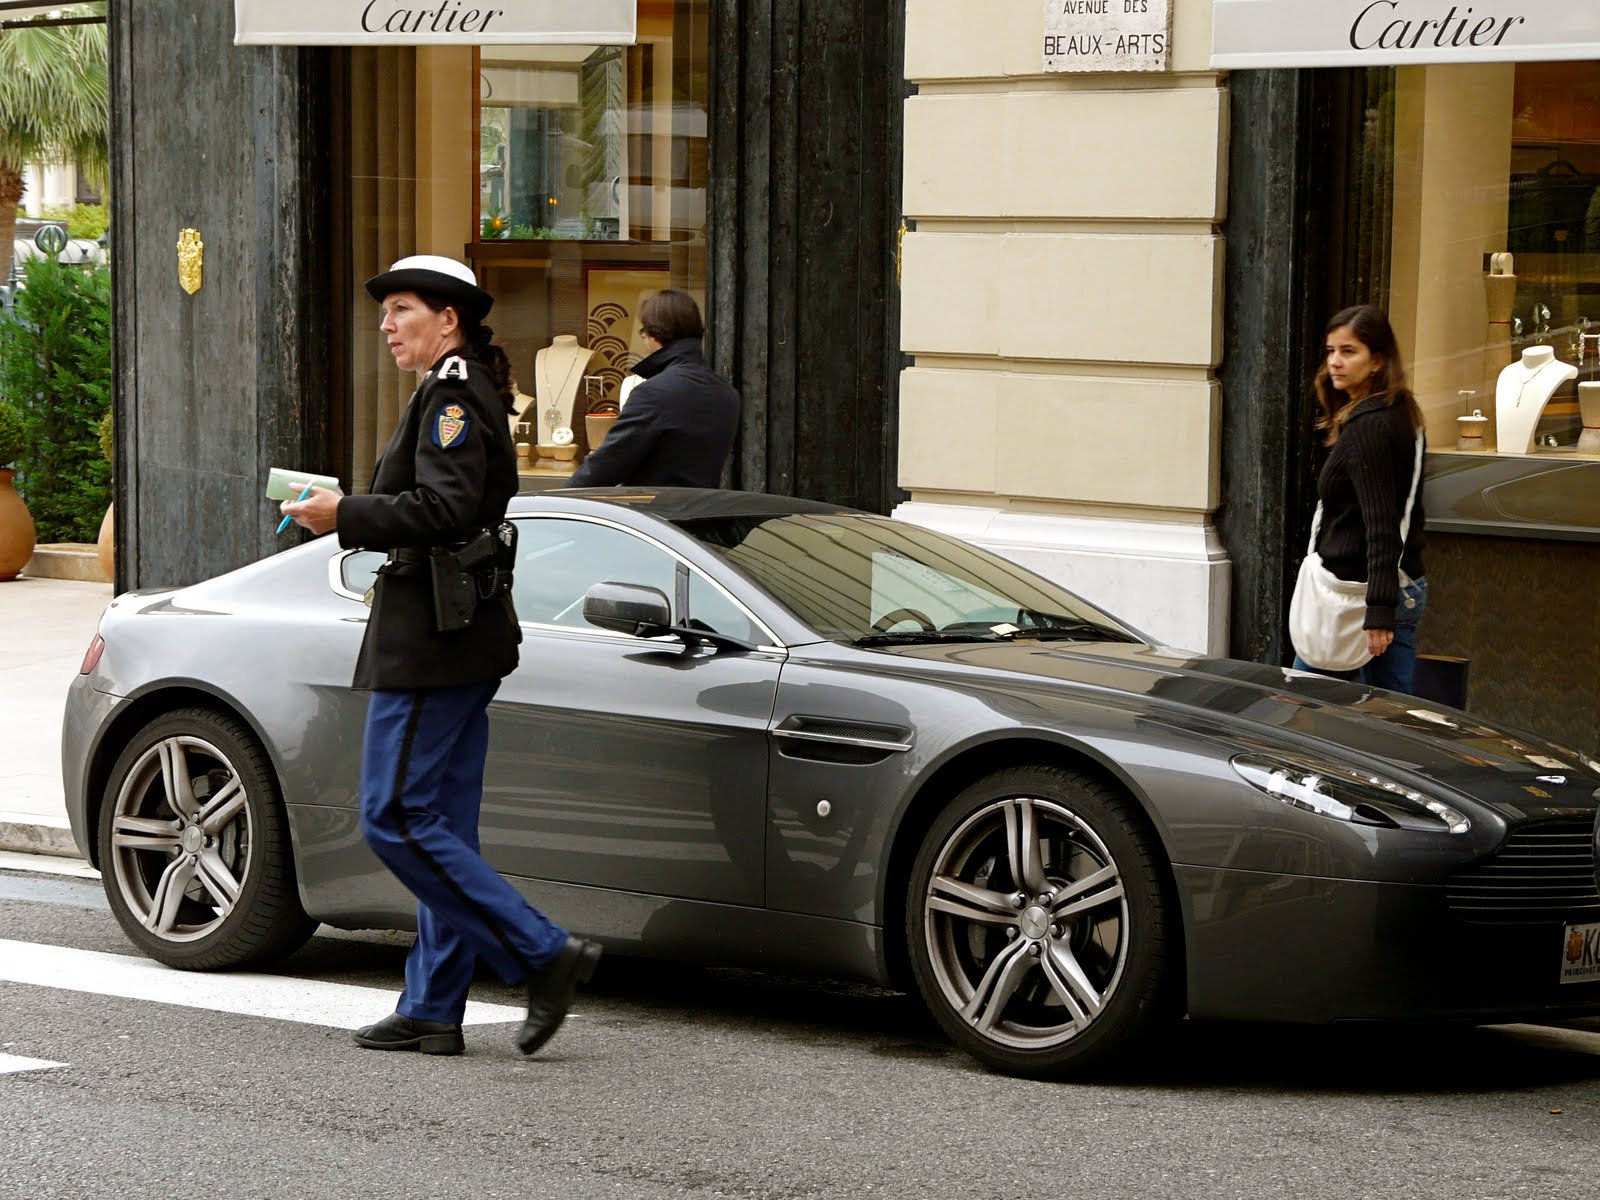 Monte Carlo Weekly Photo: Parking Ticket for an Aston Martin